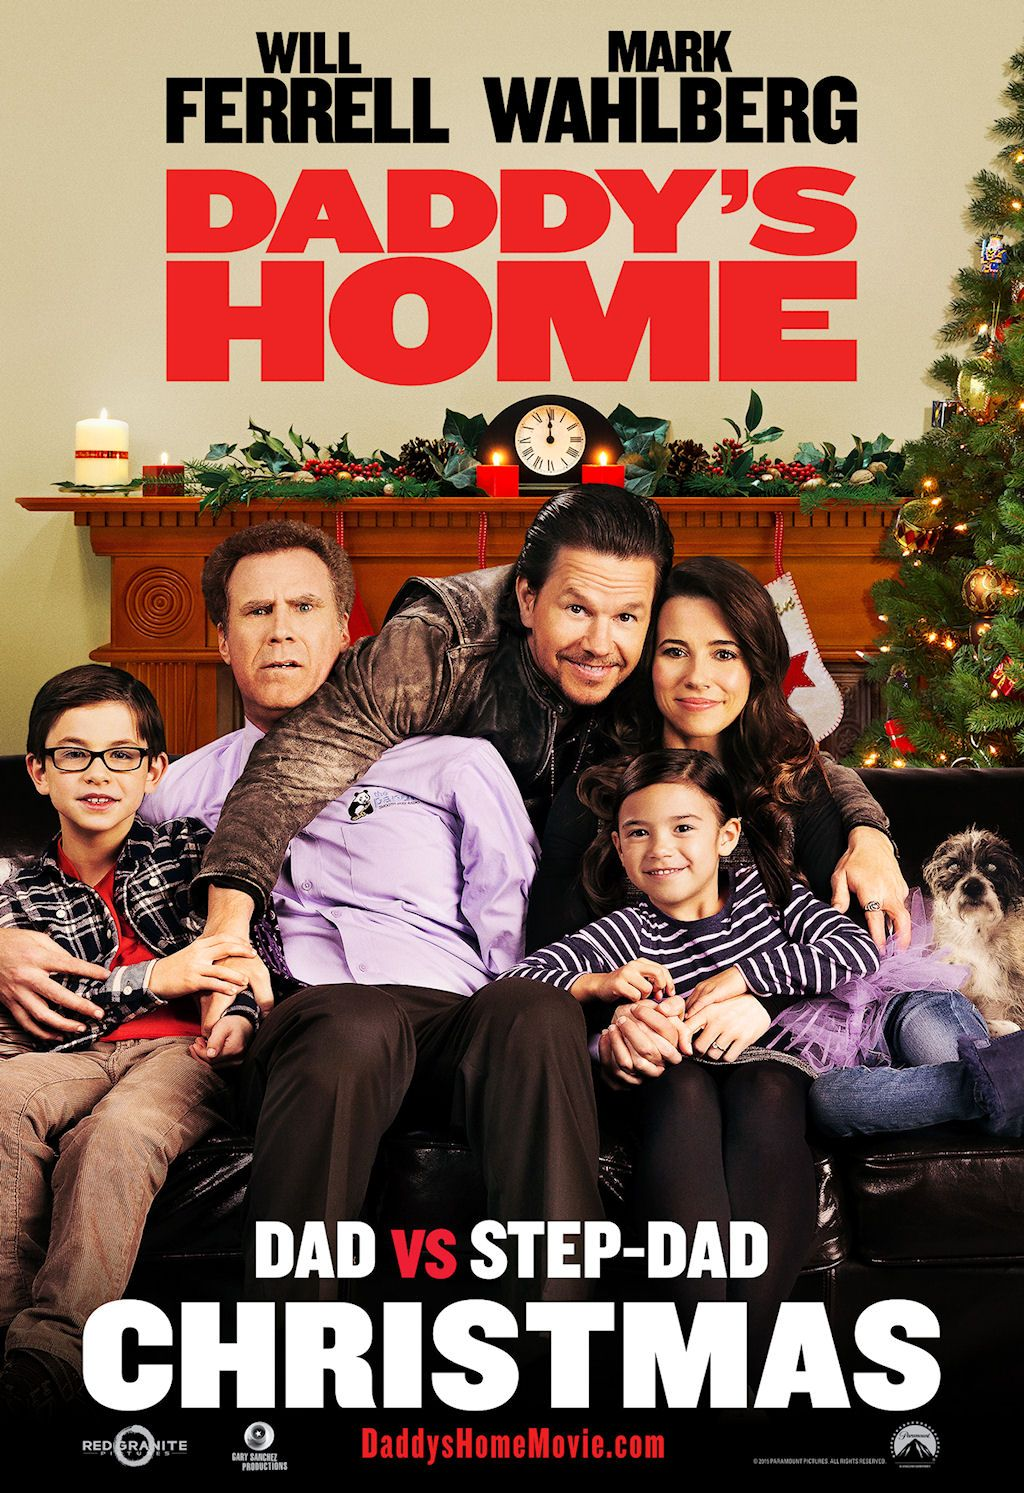 Daddys home movie poster no2 daddys home movie daddy